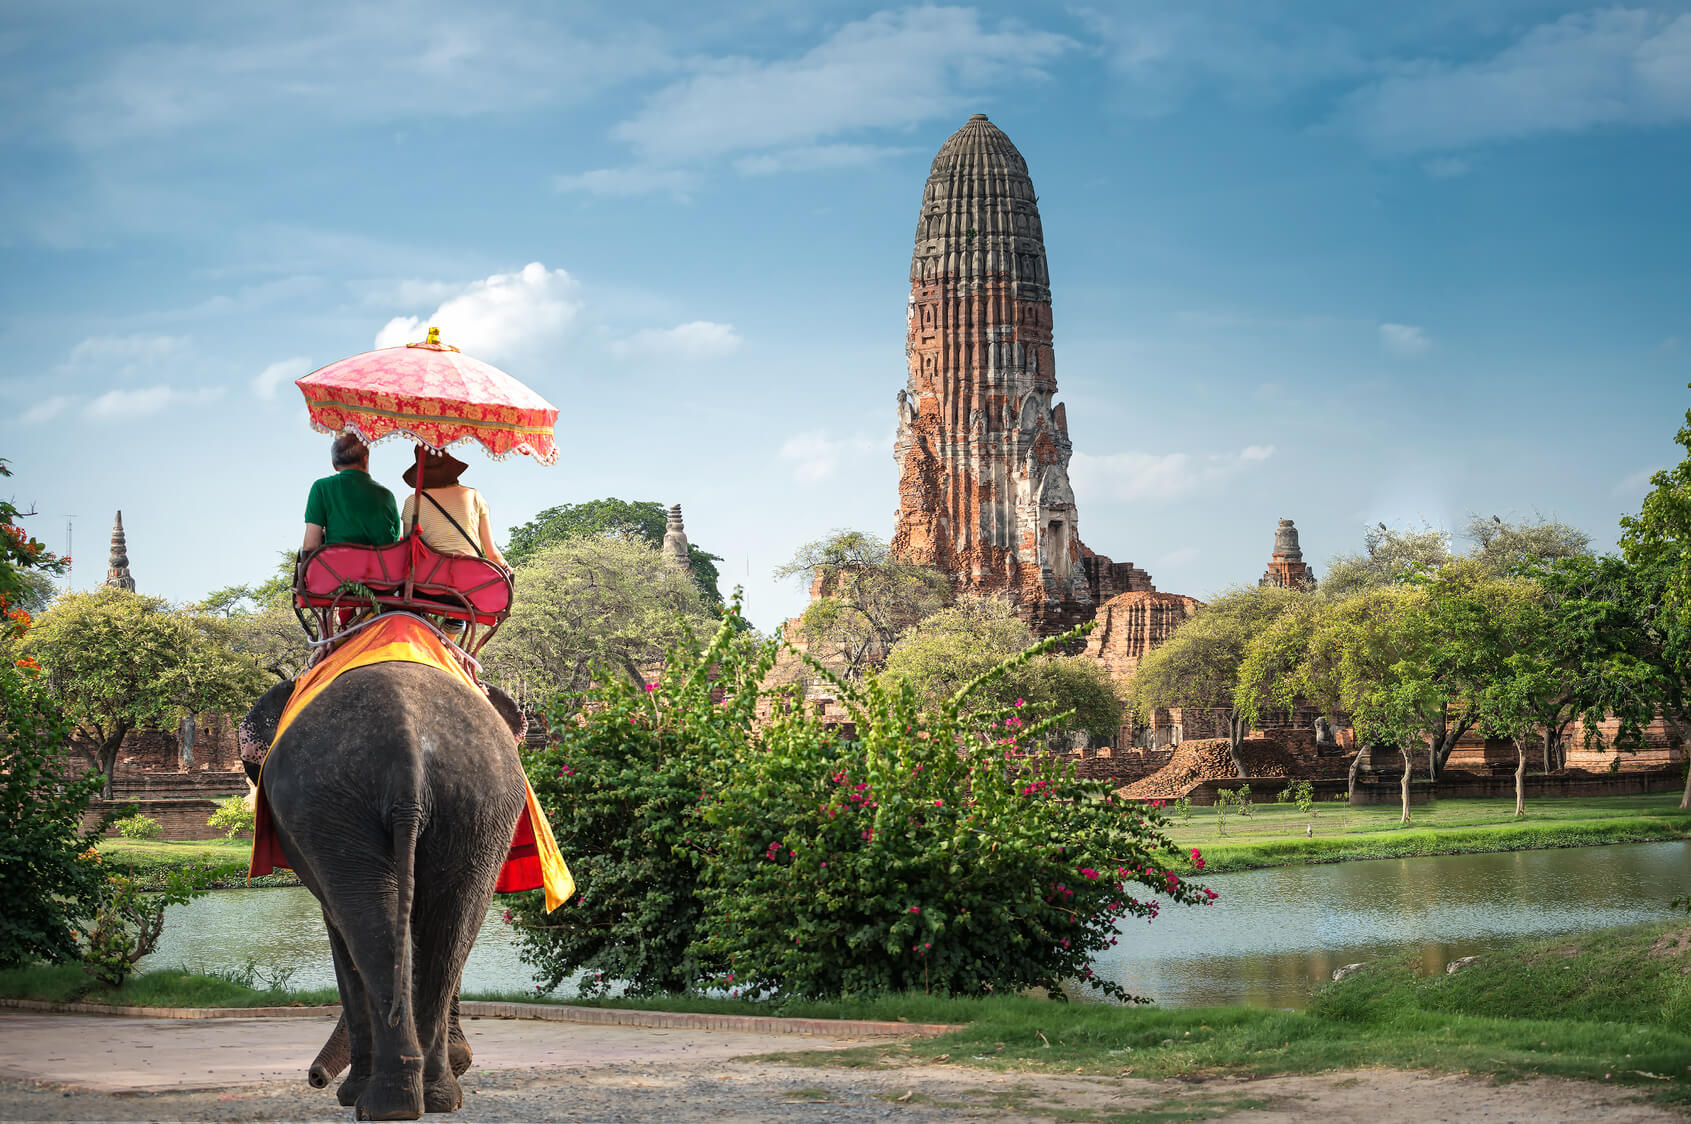 Thailand - 5 CHEAPEST PLACES TO TEACH ENGLISH ABROAD